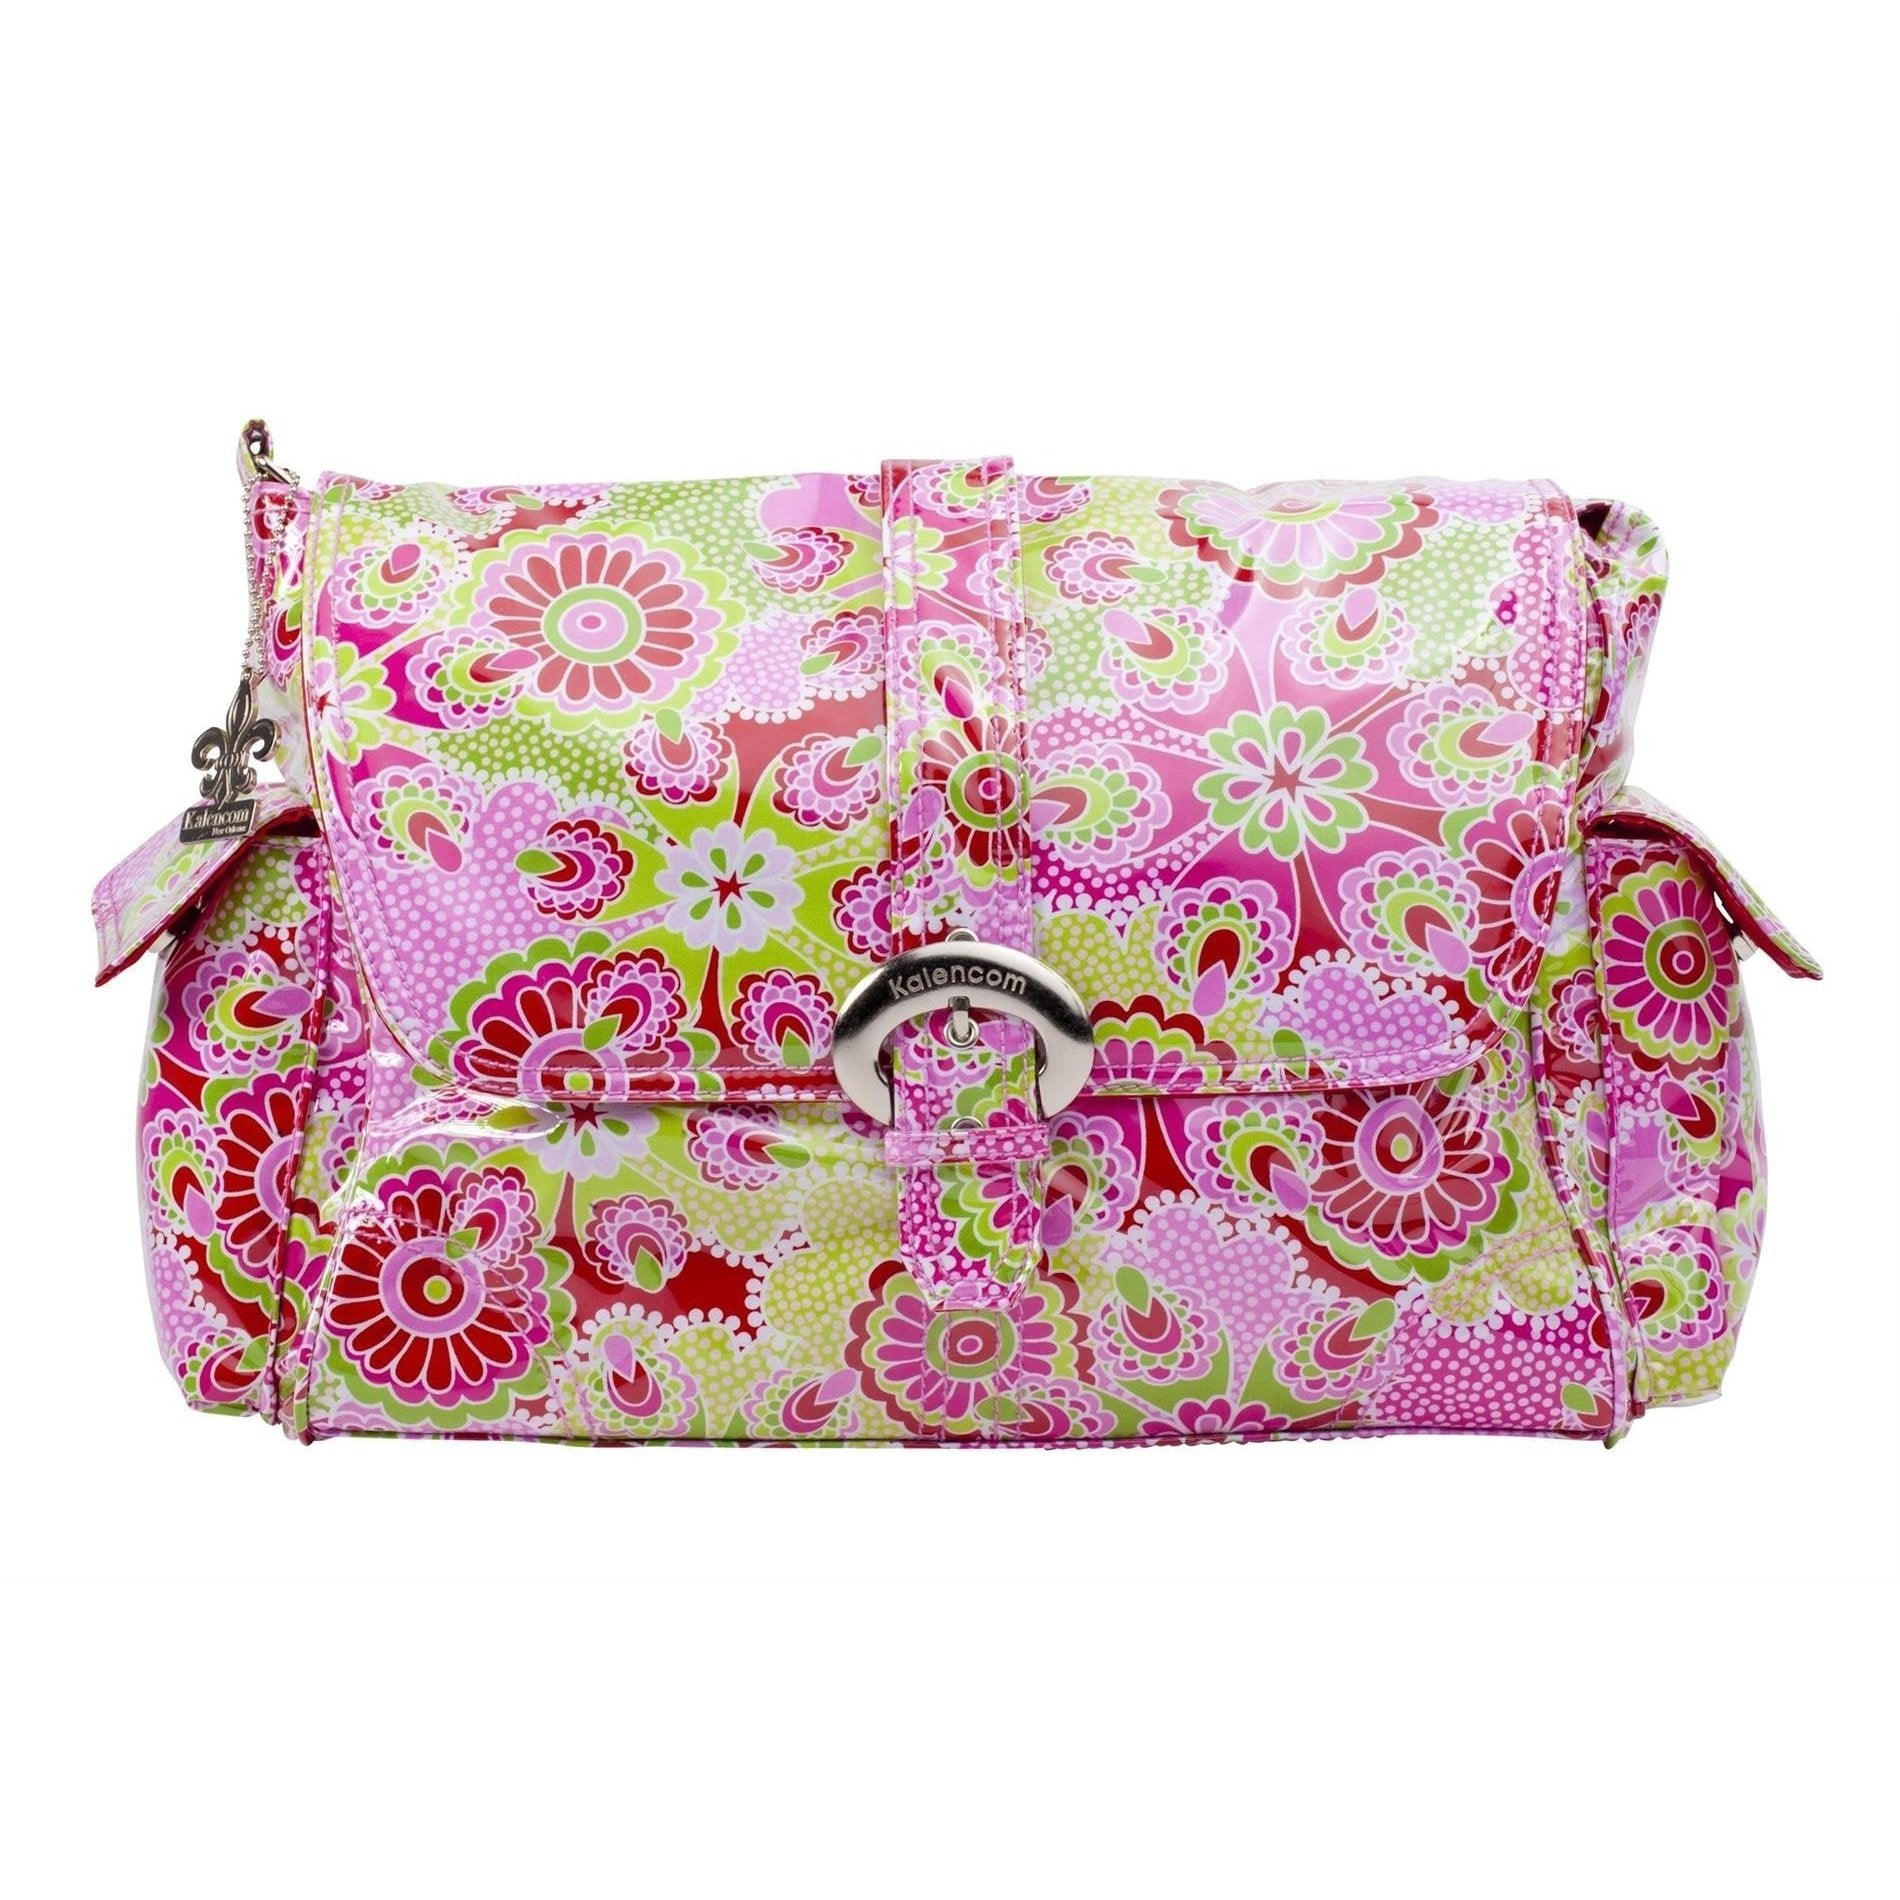 Jazz Ruby Laminated Buckle Diaper Bag | Style 2960 - Kalencom-Diaper Bags-Jack and Jill Boutique